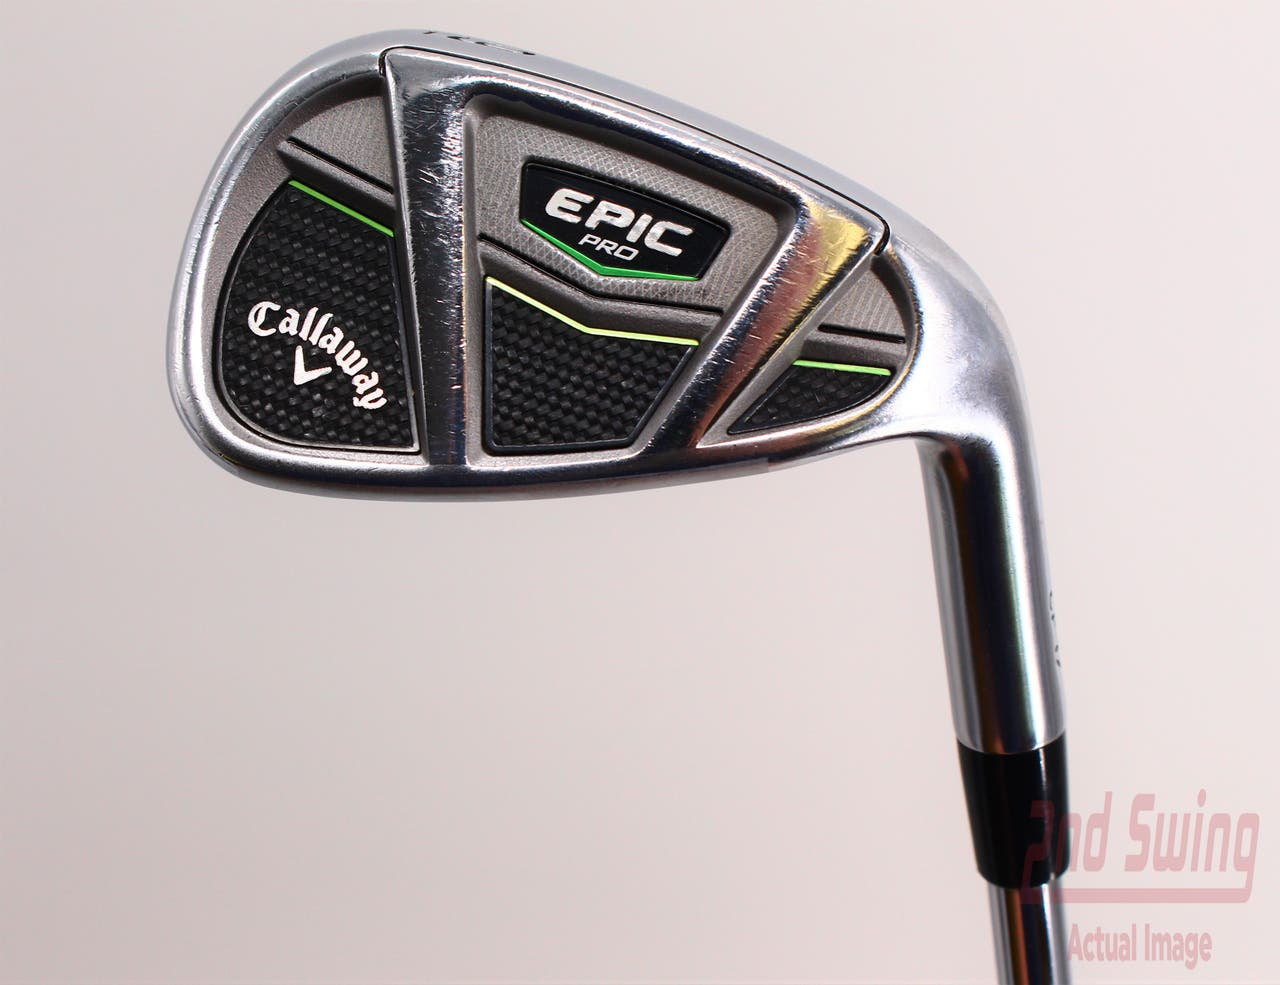 Callaway Epic Pro Single Iron 9 Iron Project X LZ 95 6.0 Steel Stiff Right Handed 35.75 in